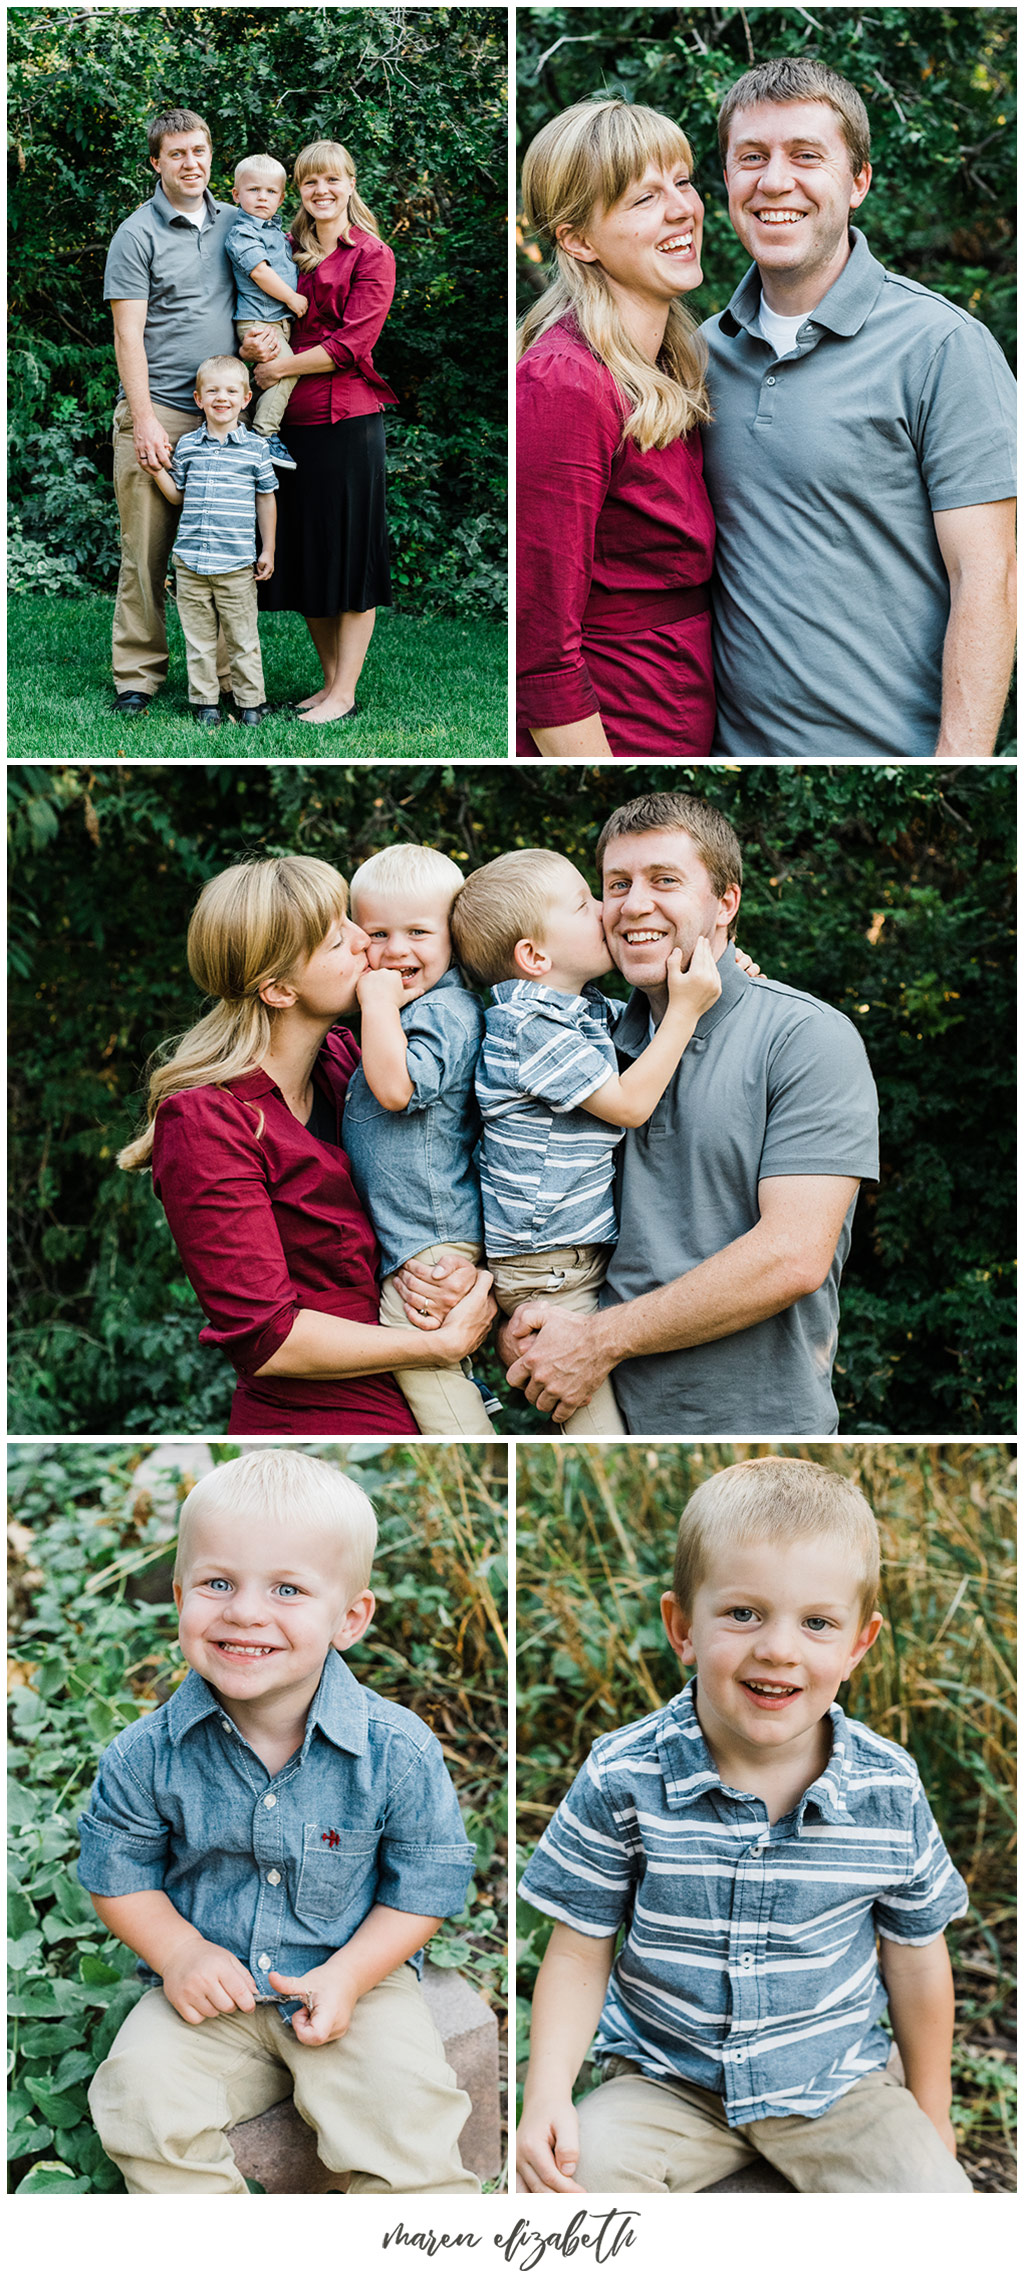 Utah extended family pictures by Maren Elizabeth Photography taken in a neighbor's driveway. Beautiful photo locations can be found anywhere if you get creative. | Arizona Family Photographer